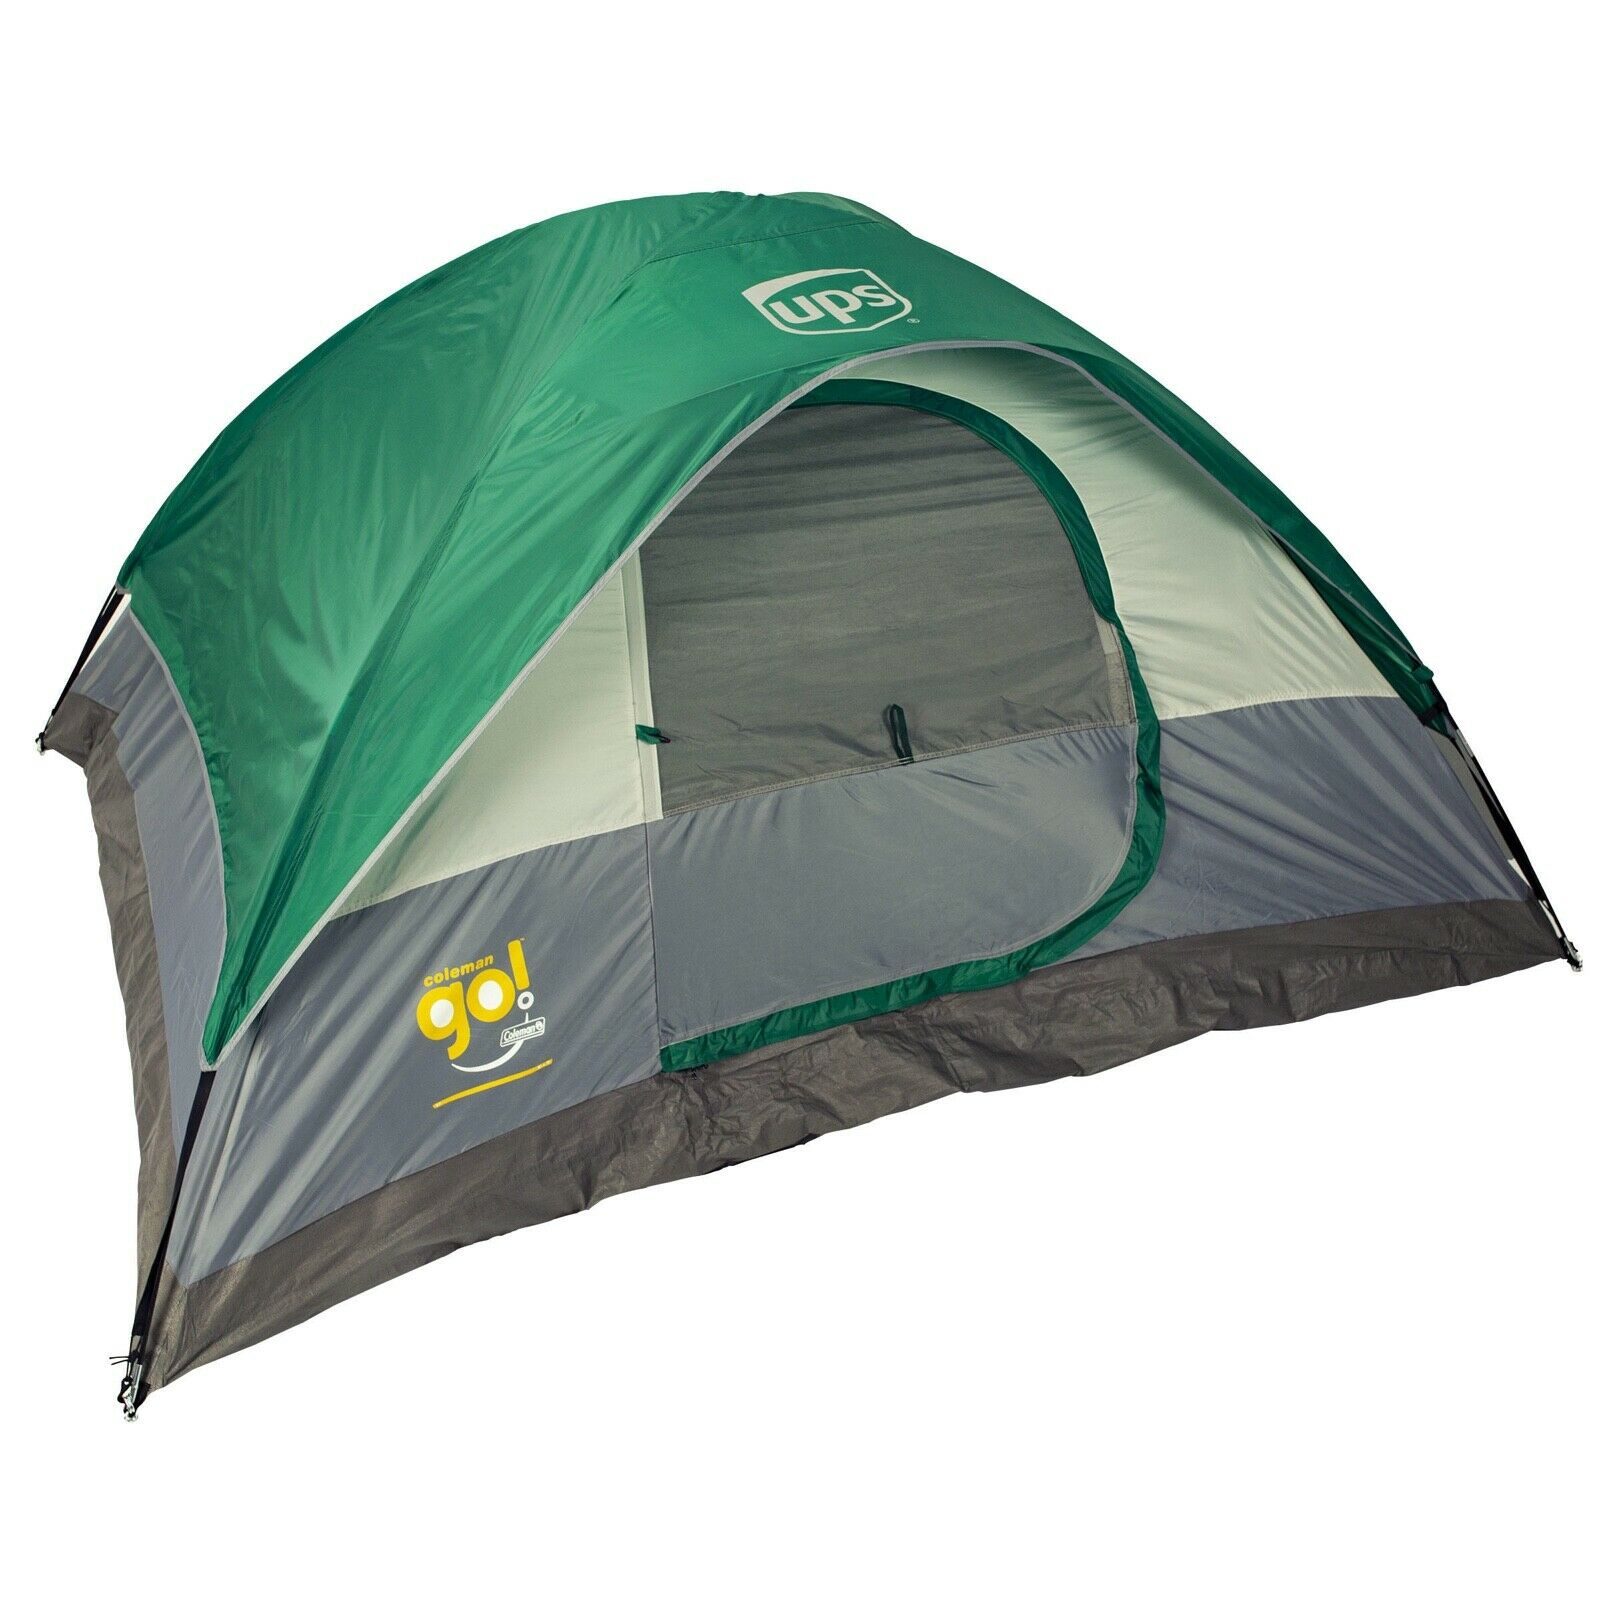 UNITED PARCEL SERVICE UPS COLEMAN GREEN WATERPROOF 4 PERSON SLEEPING TENT + BAG